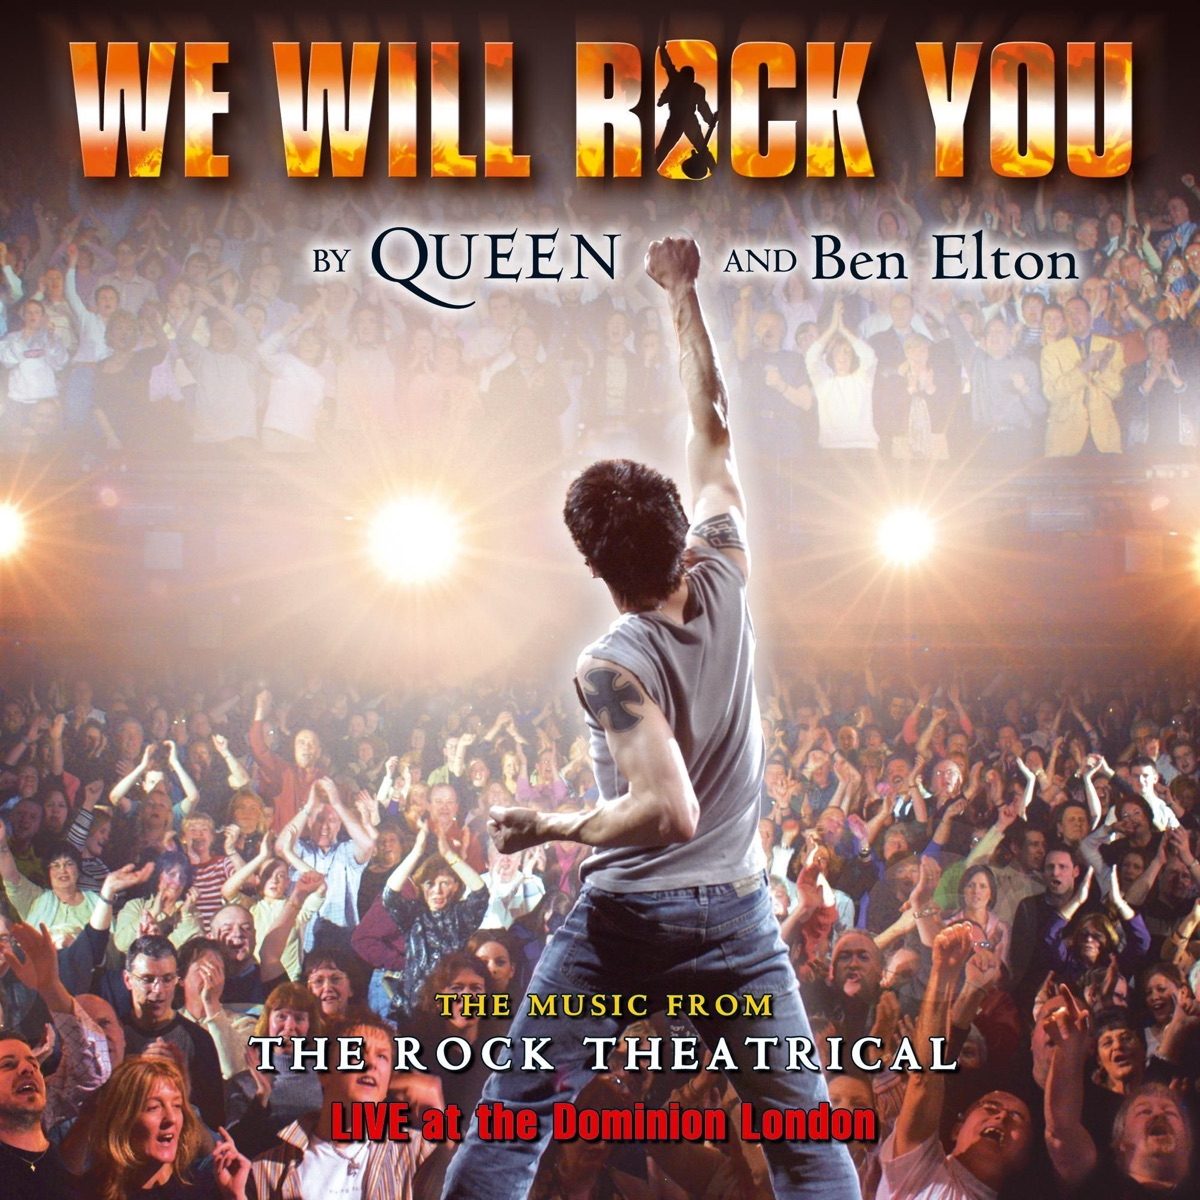 We Will Rock You Cast Album The Cast of We Will Rock You CD cover